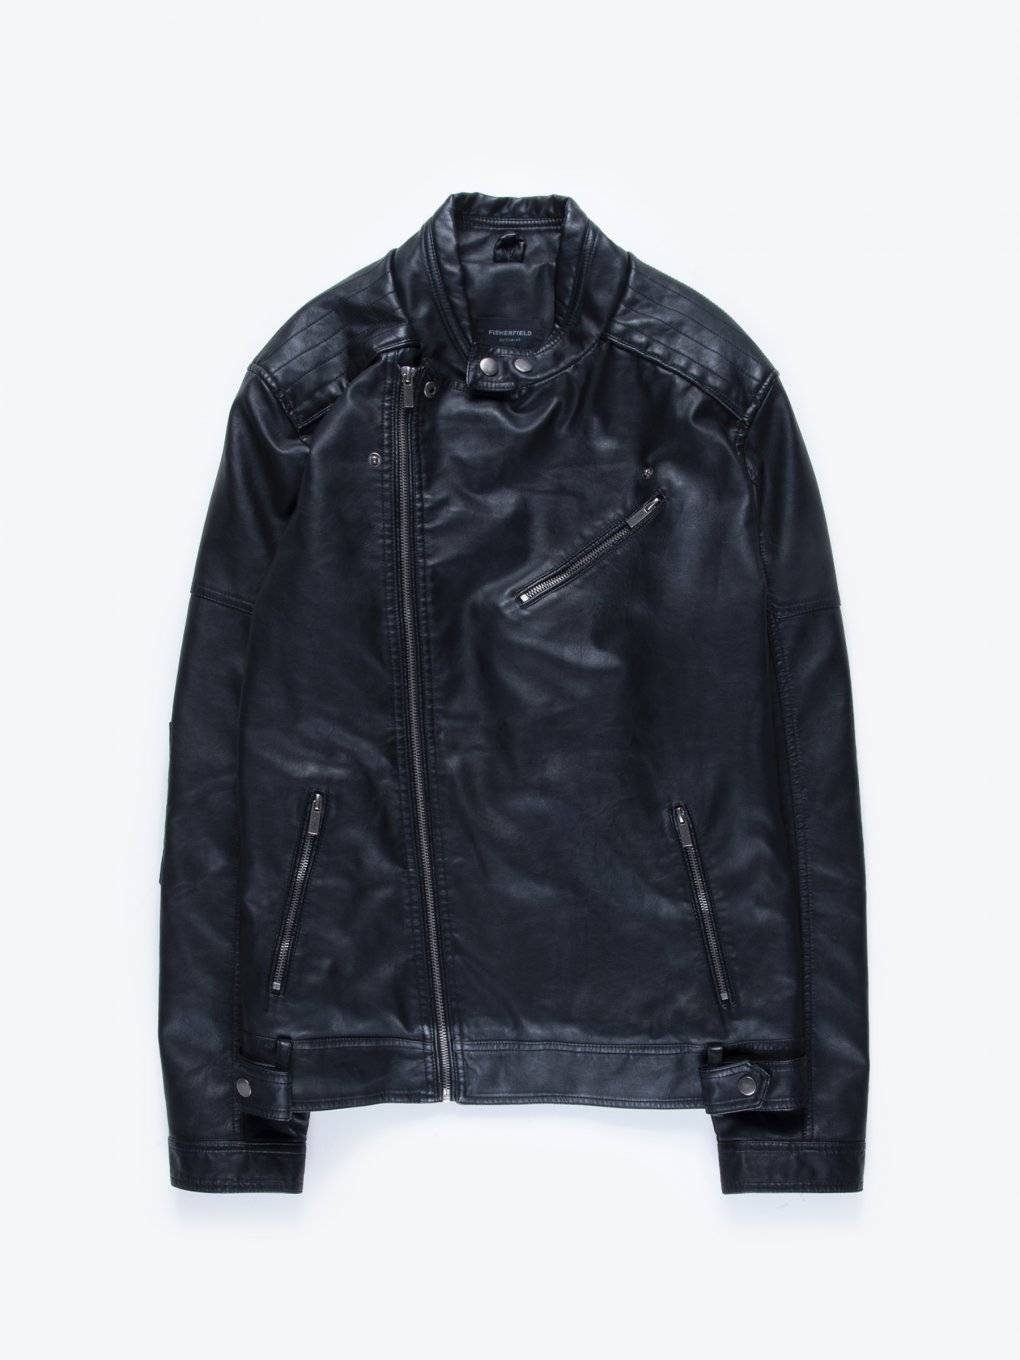 Biker jacket with asymmetric zipper